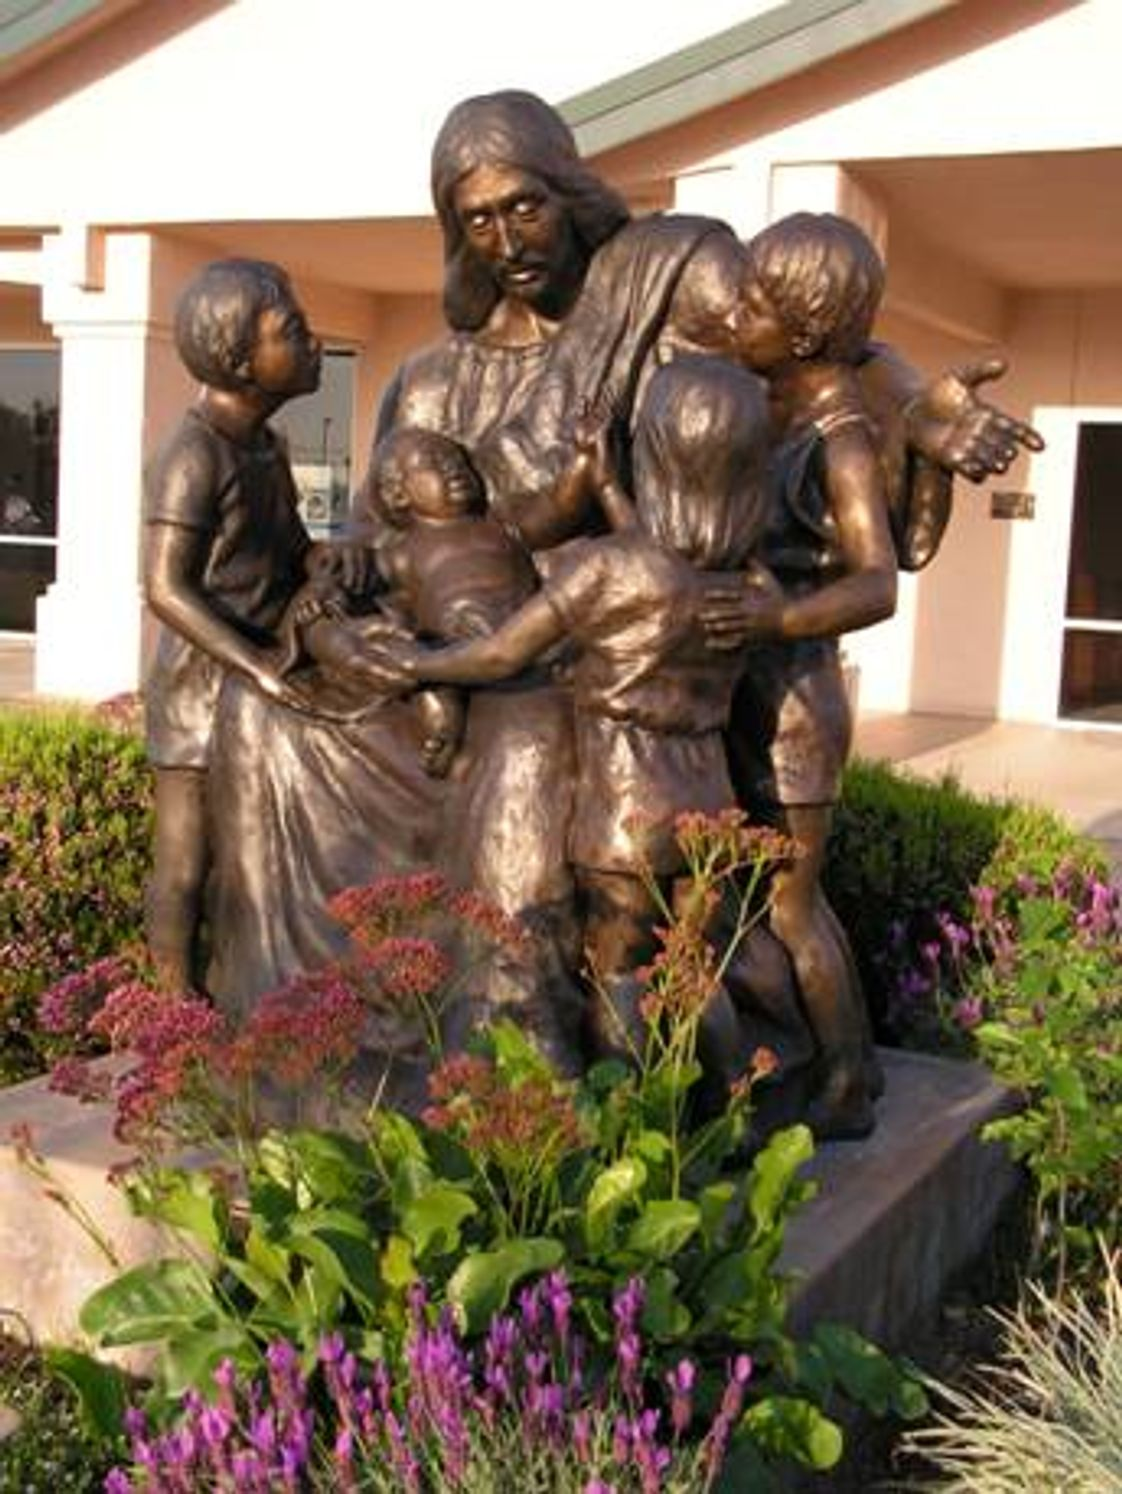 Central Valley Christian Academy Photo - MAA is dedicated to a Christ-like atmosphere. This sculpture reminds us of the influence Christ.